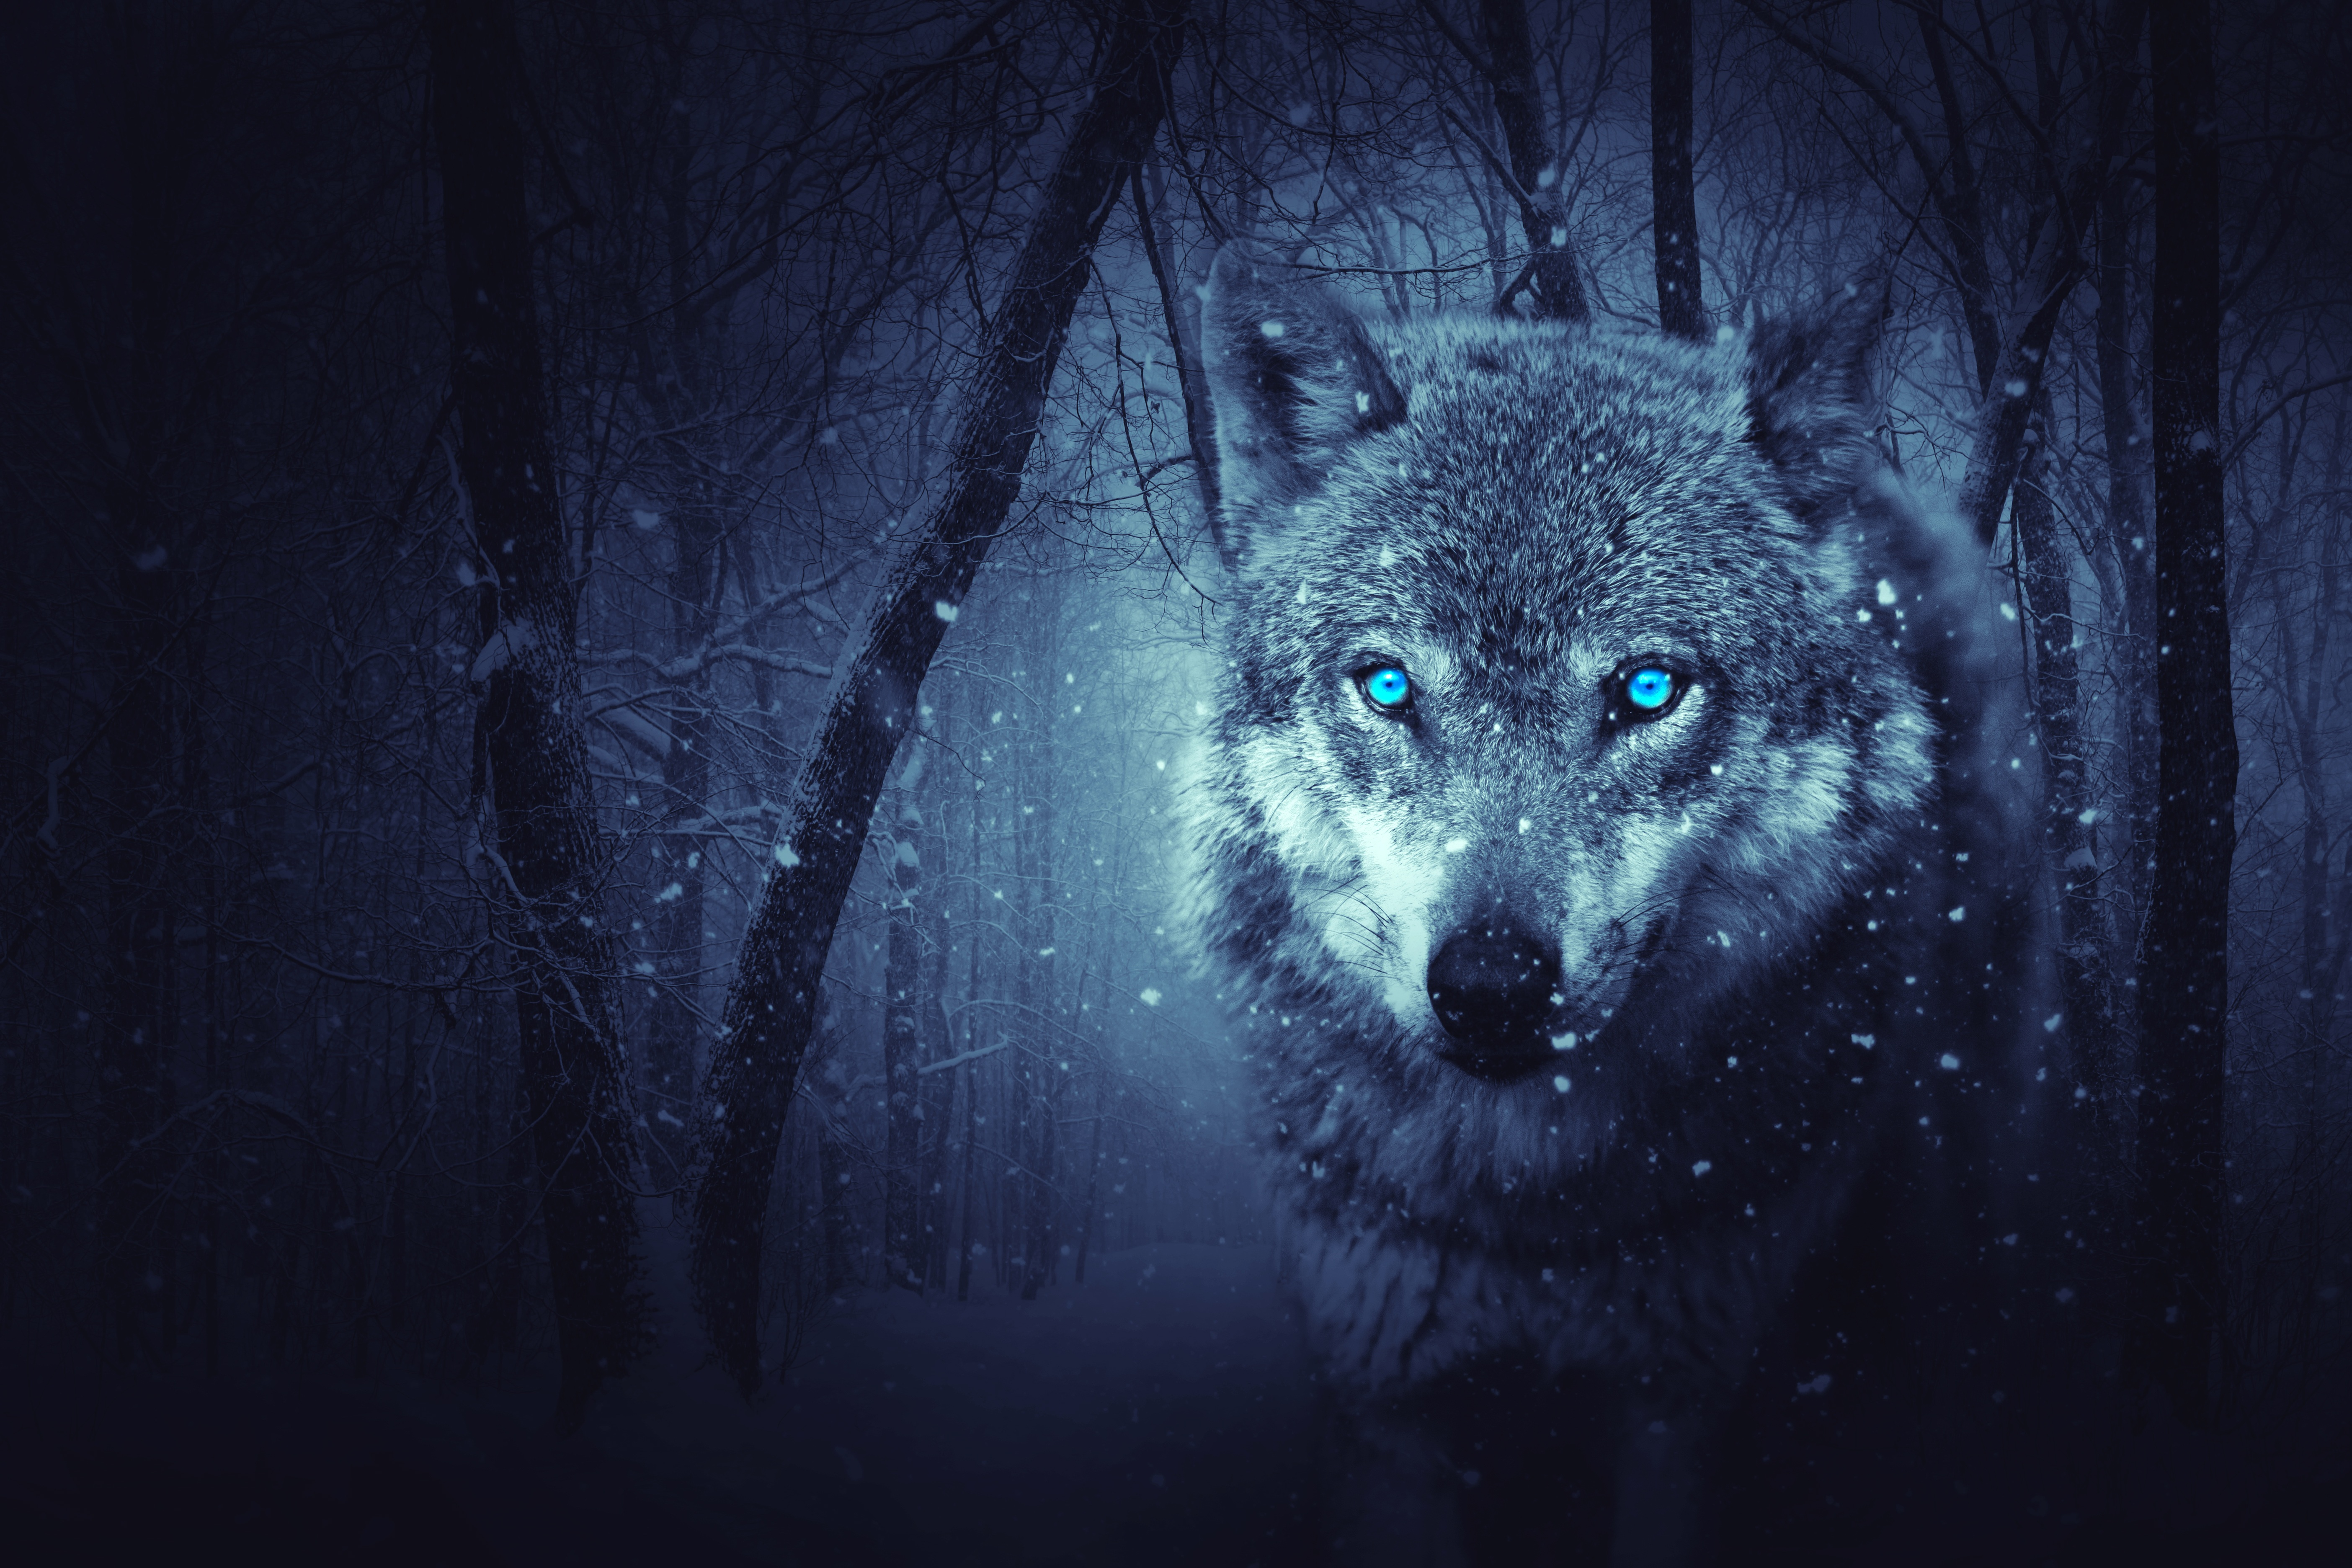 156736 download wallpaper Animals, Wolf, Predator, Photoshop, Art screensavers and pictures for free